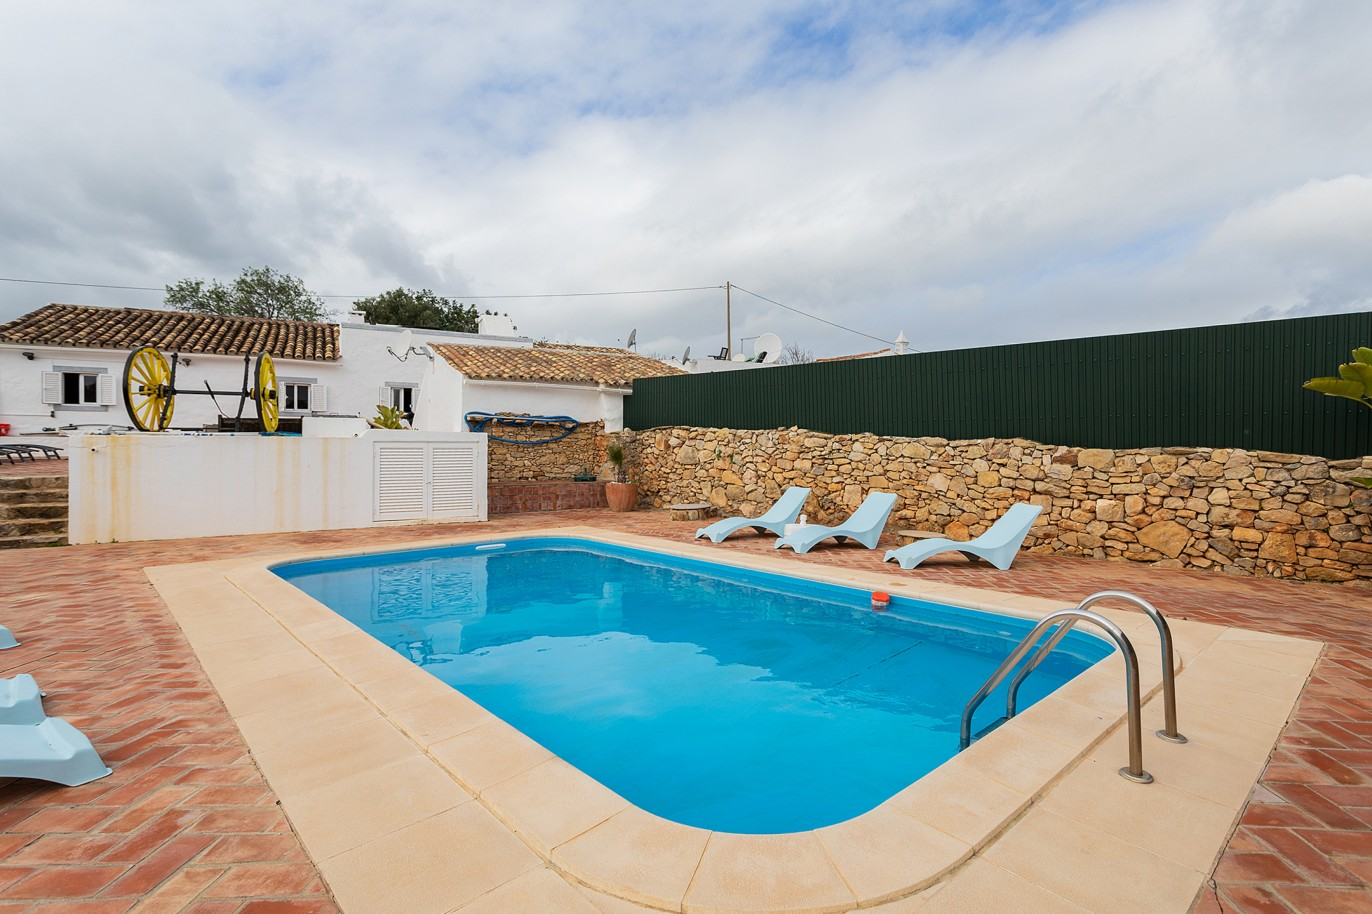 rustic-house-with-swimming-pool-and-mountain-view-estoi-faro-algarve